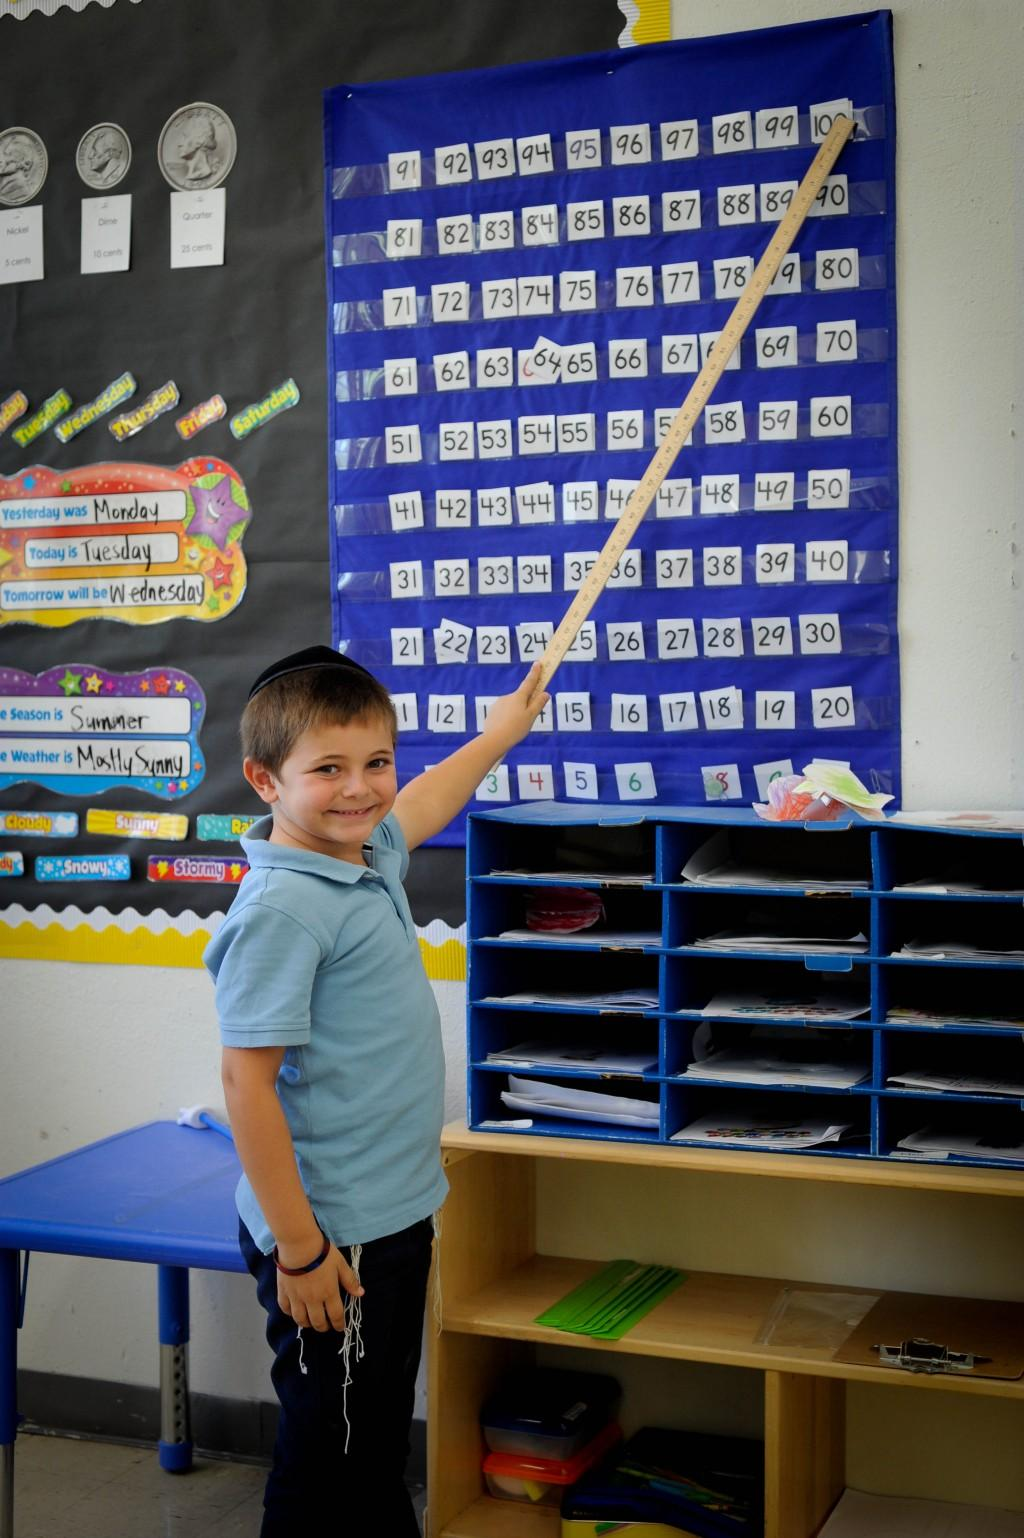 Boy pointing to numbers